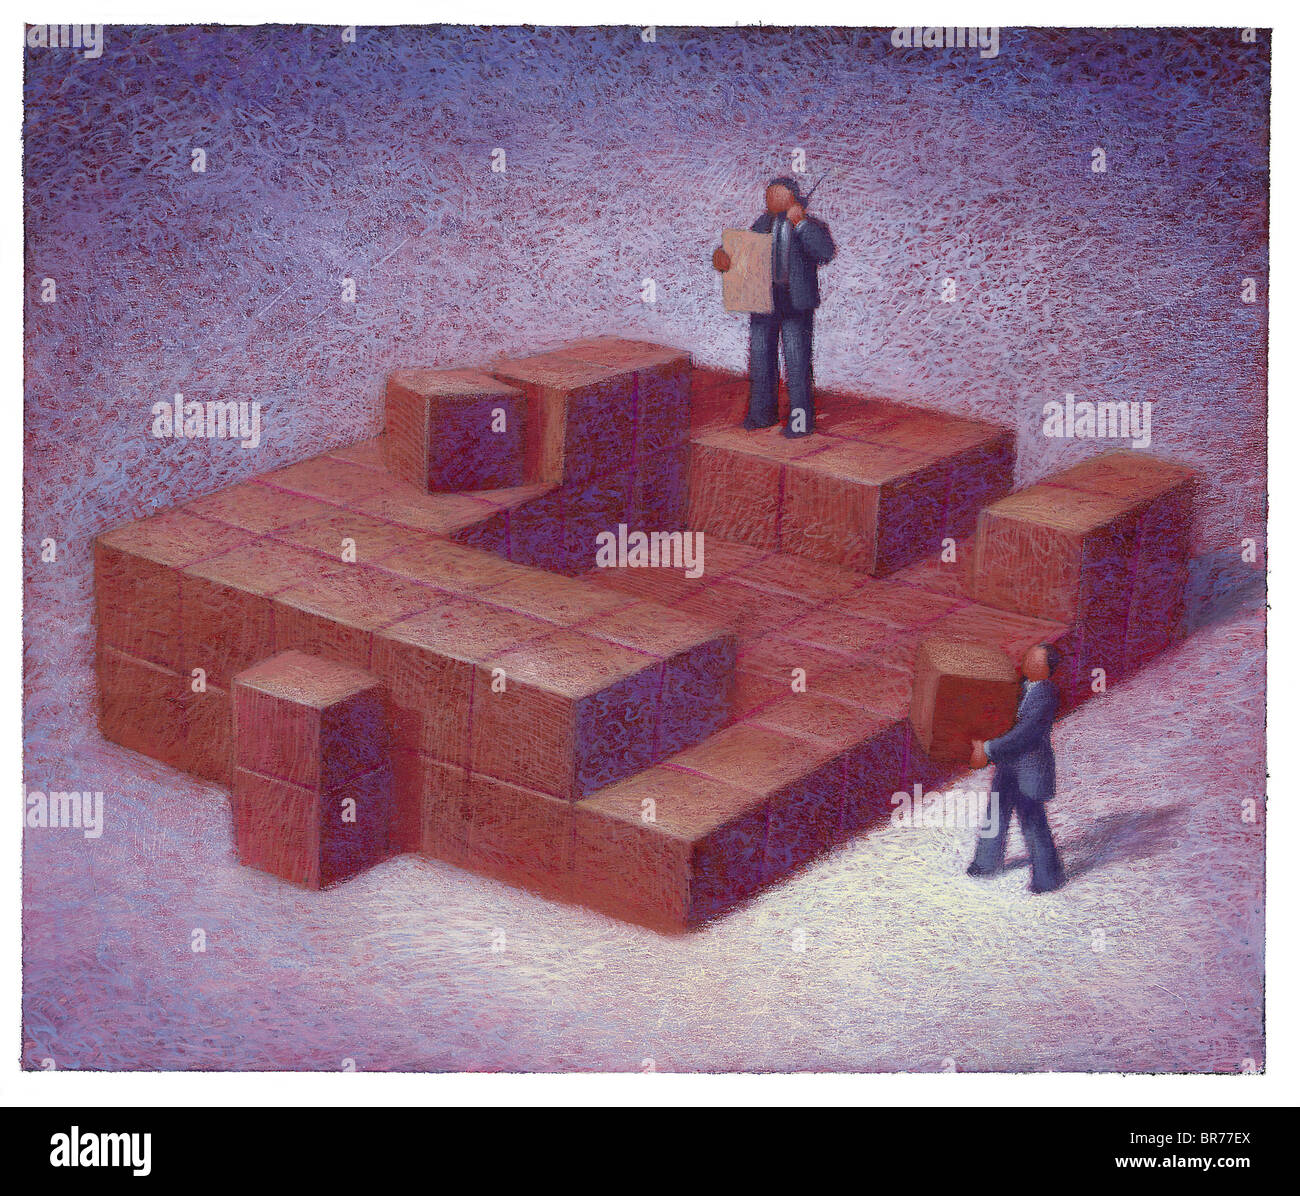 Businessmen talking on the phone and moving boxes - Stock Image